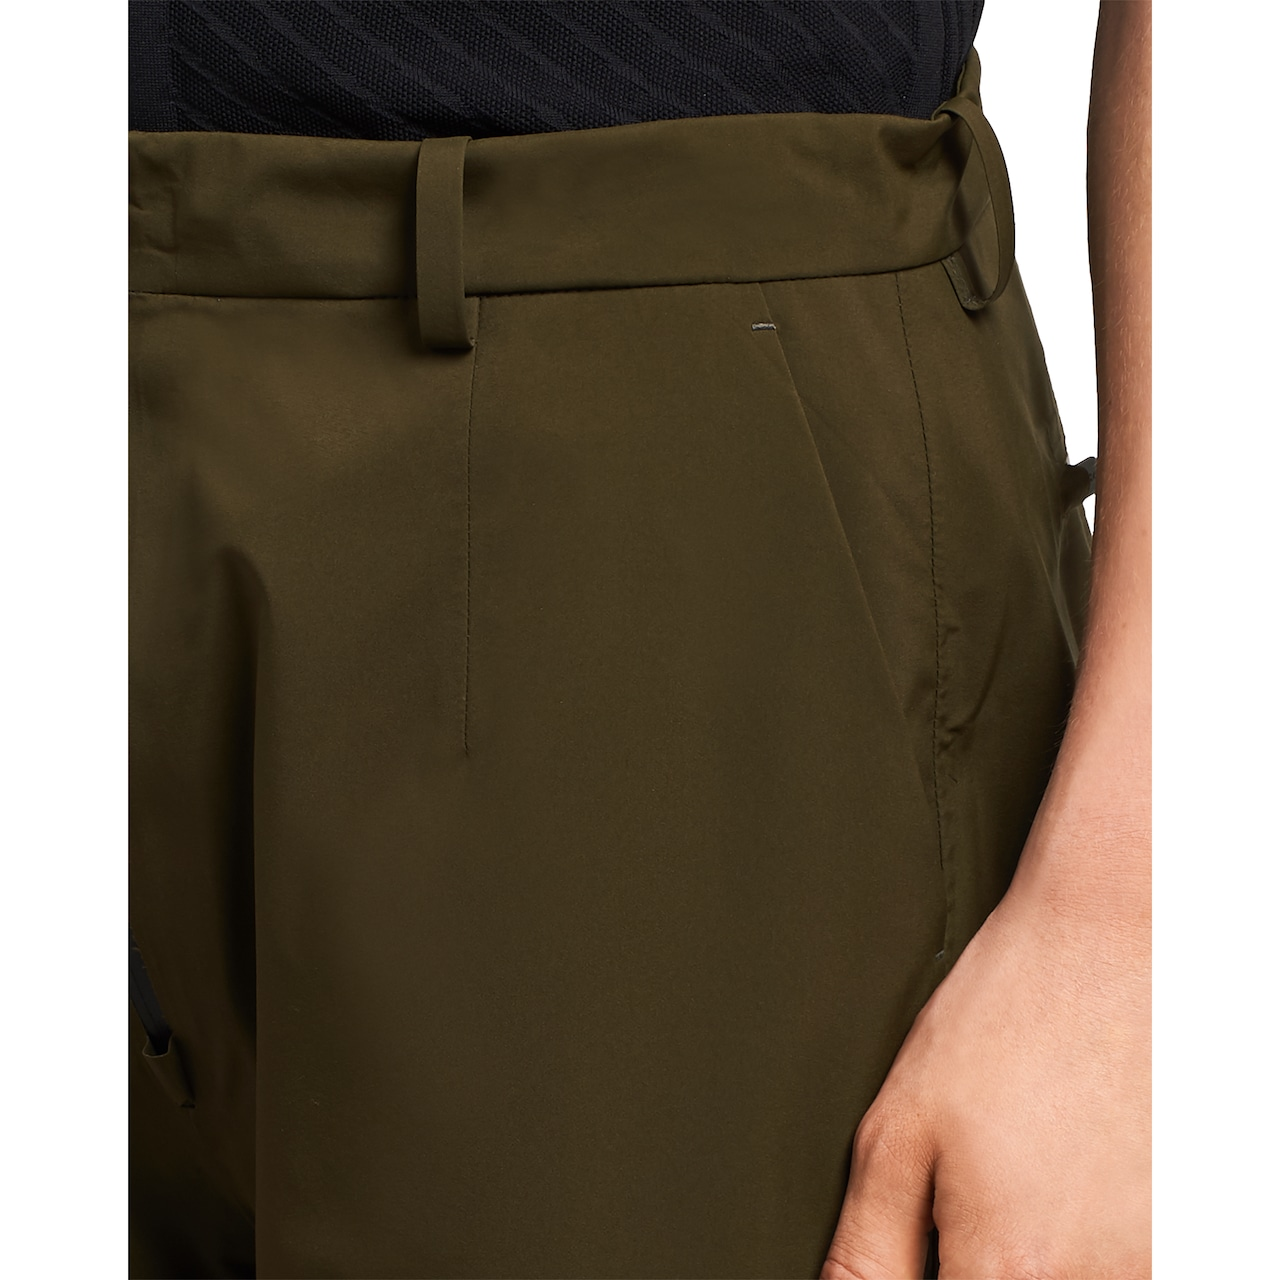 LR-MX014 professional technical fabric trousers 5